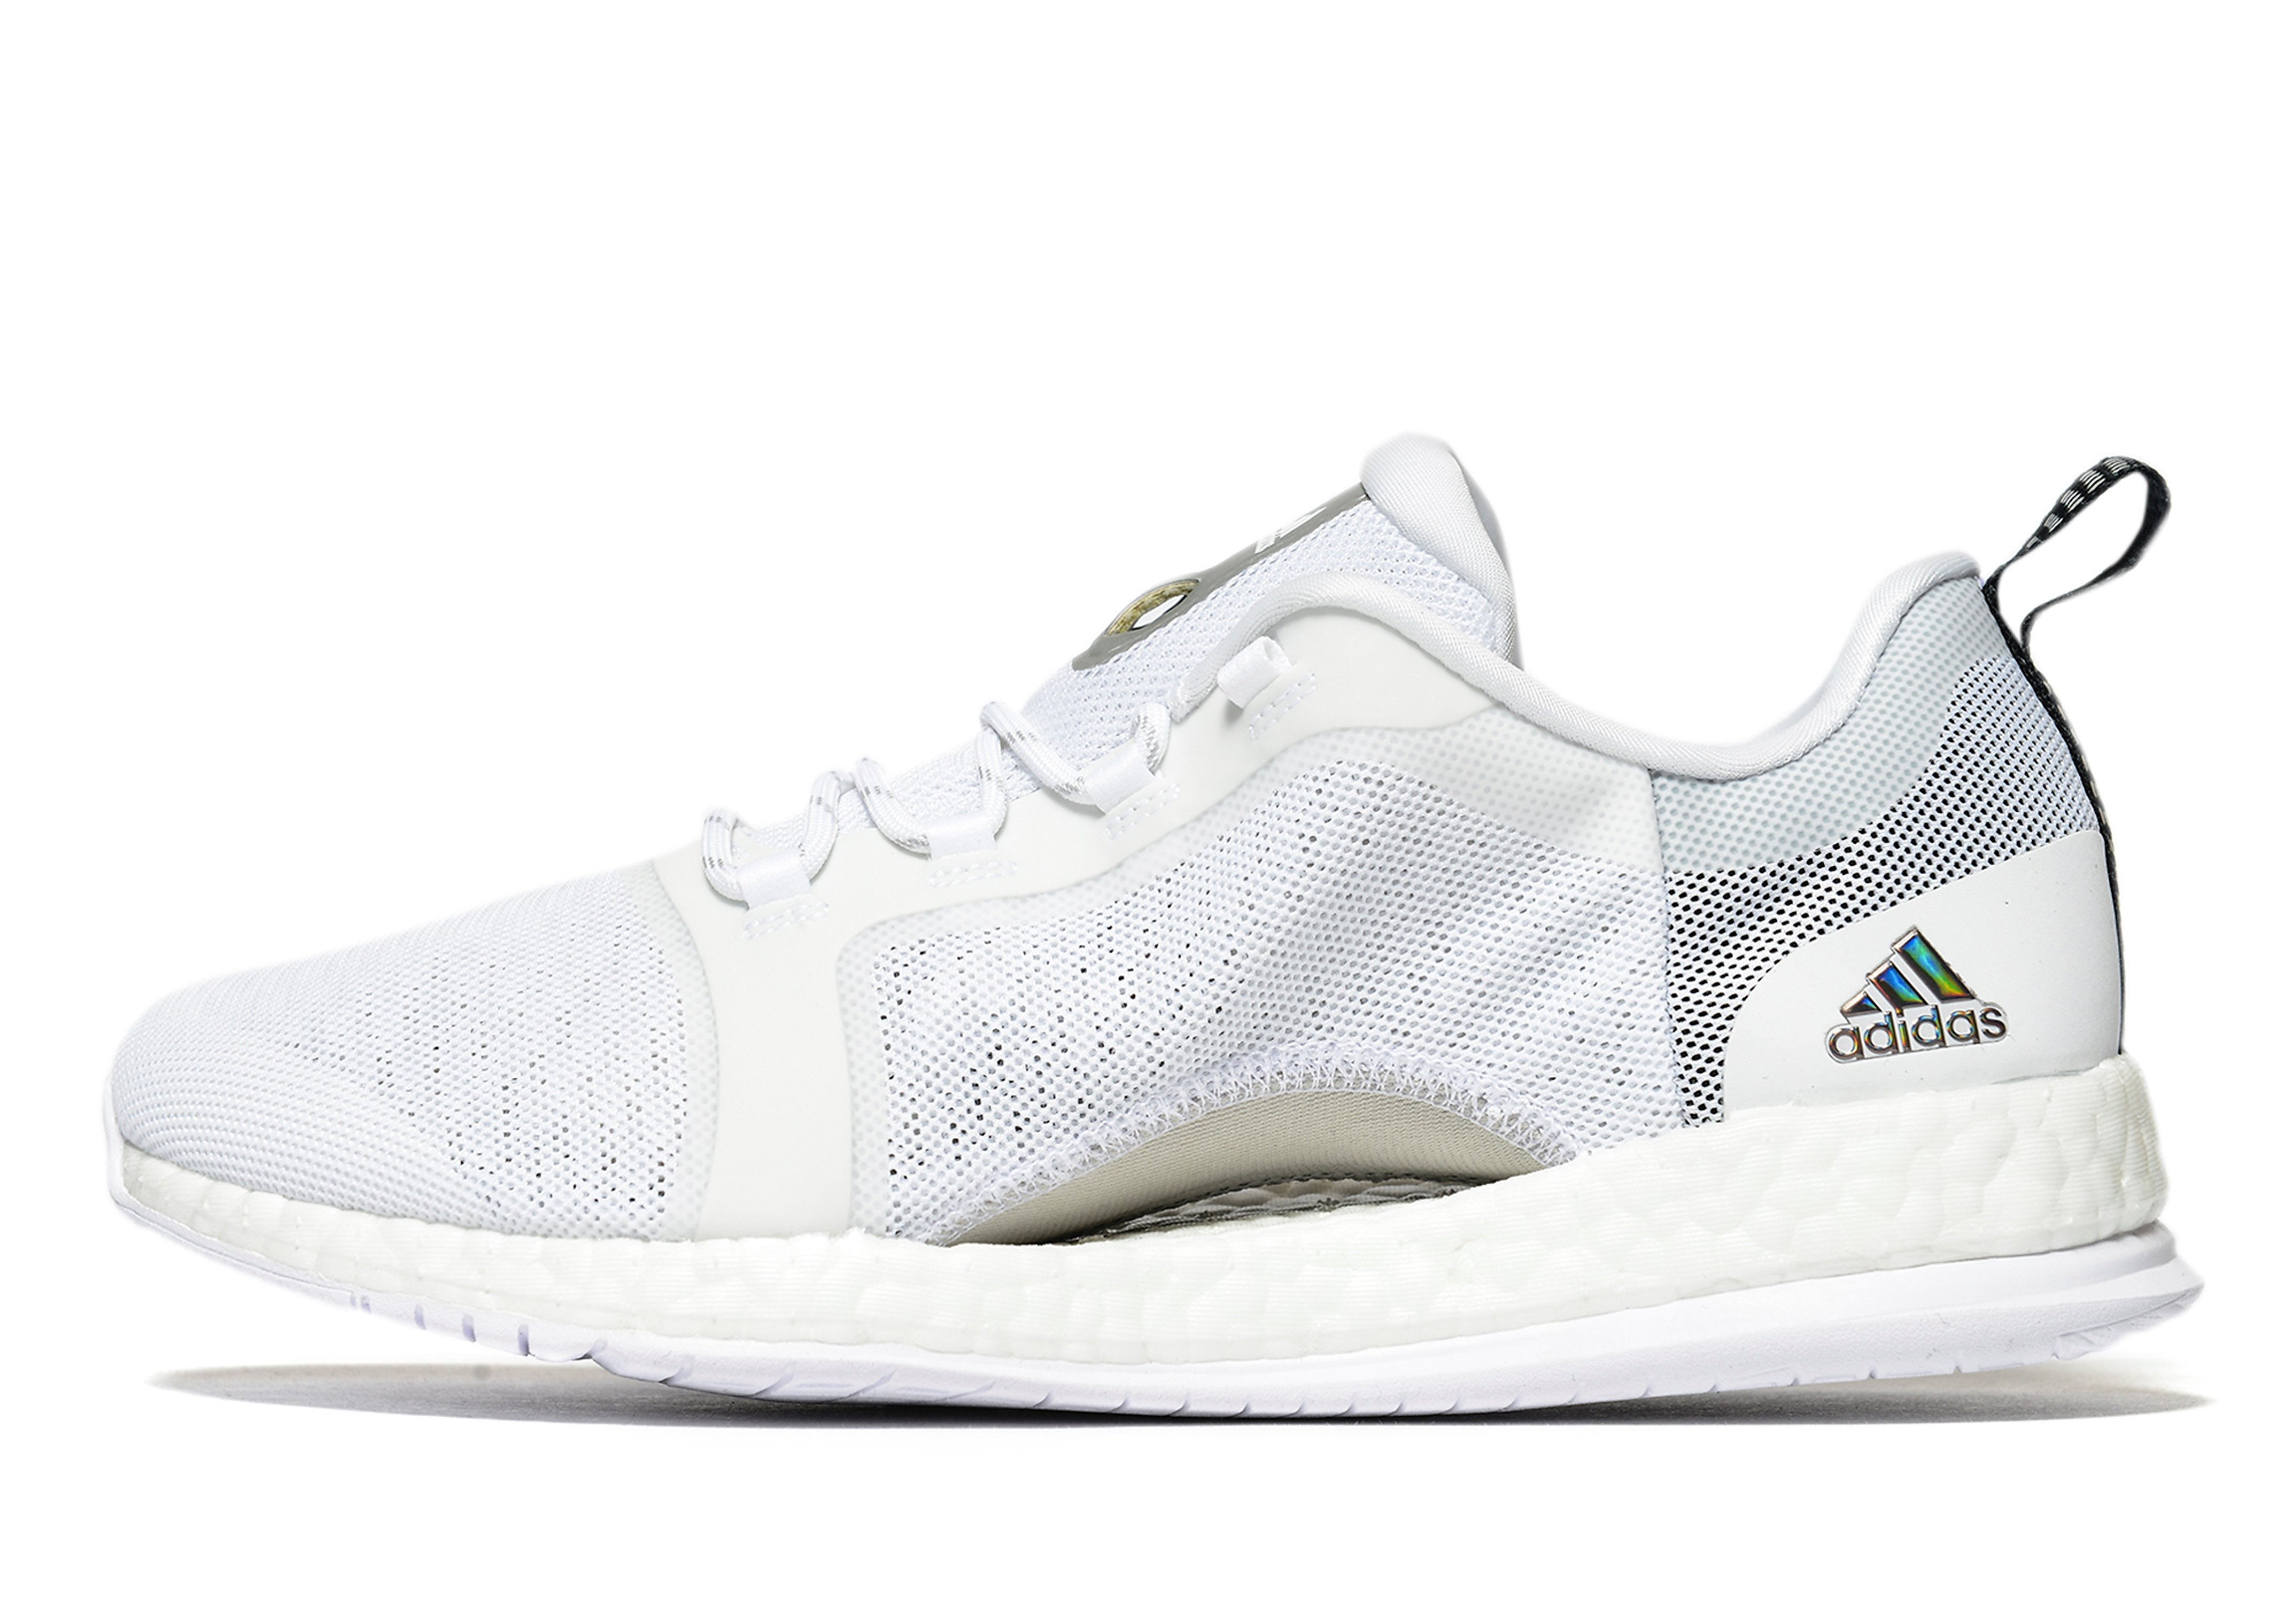 adidas Pure Boost X Trainer 2.0 Women's